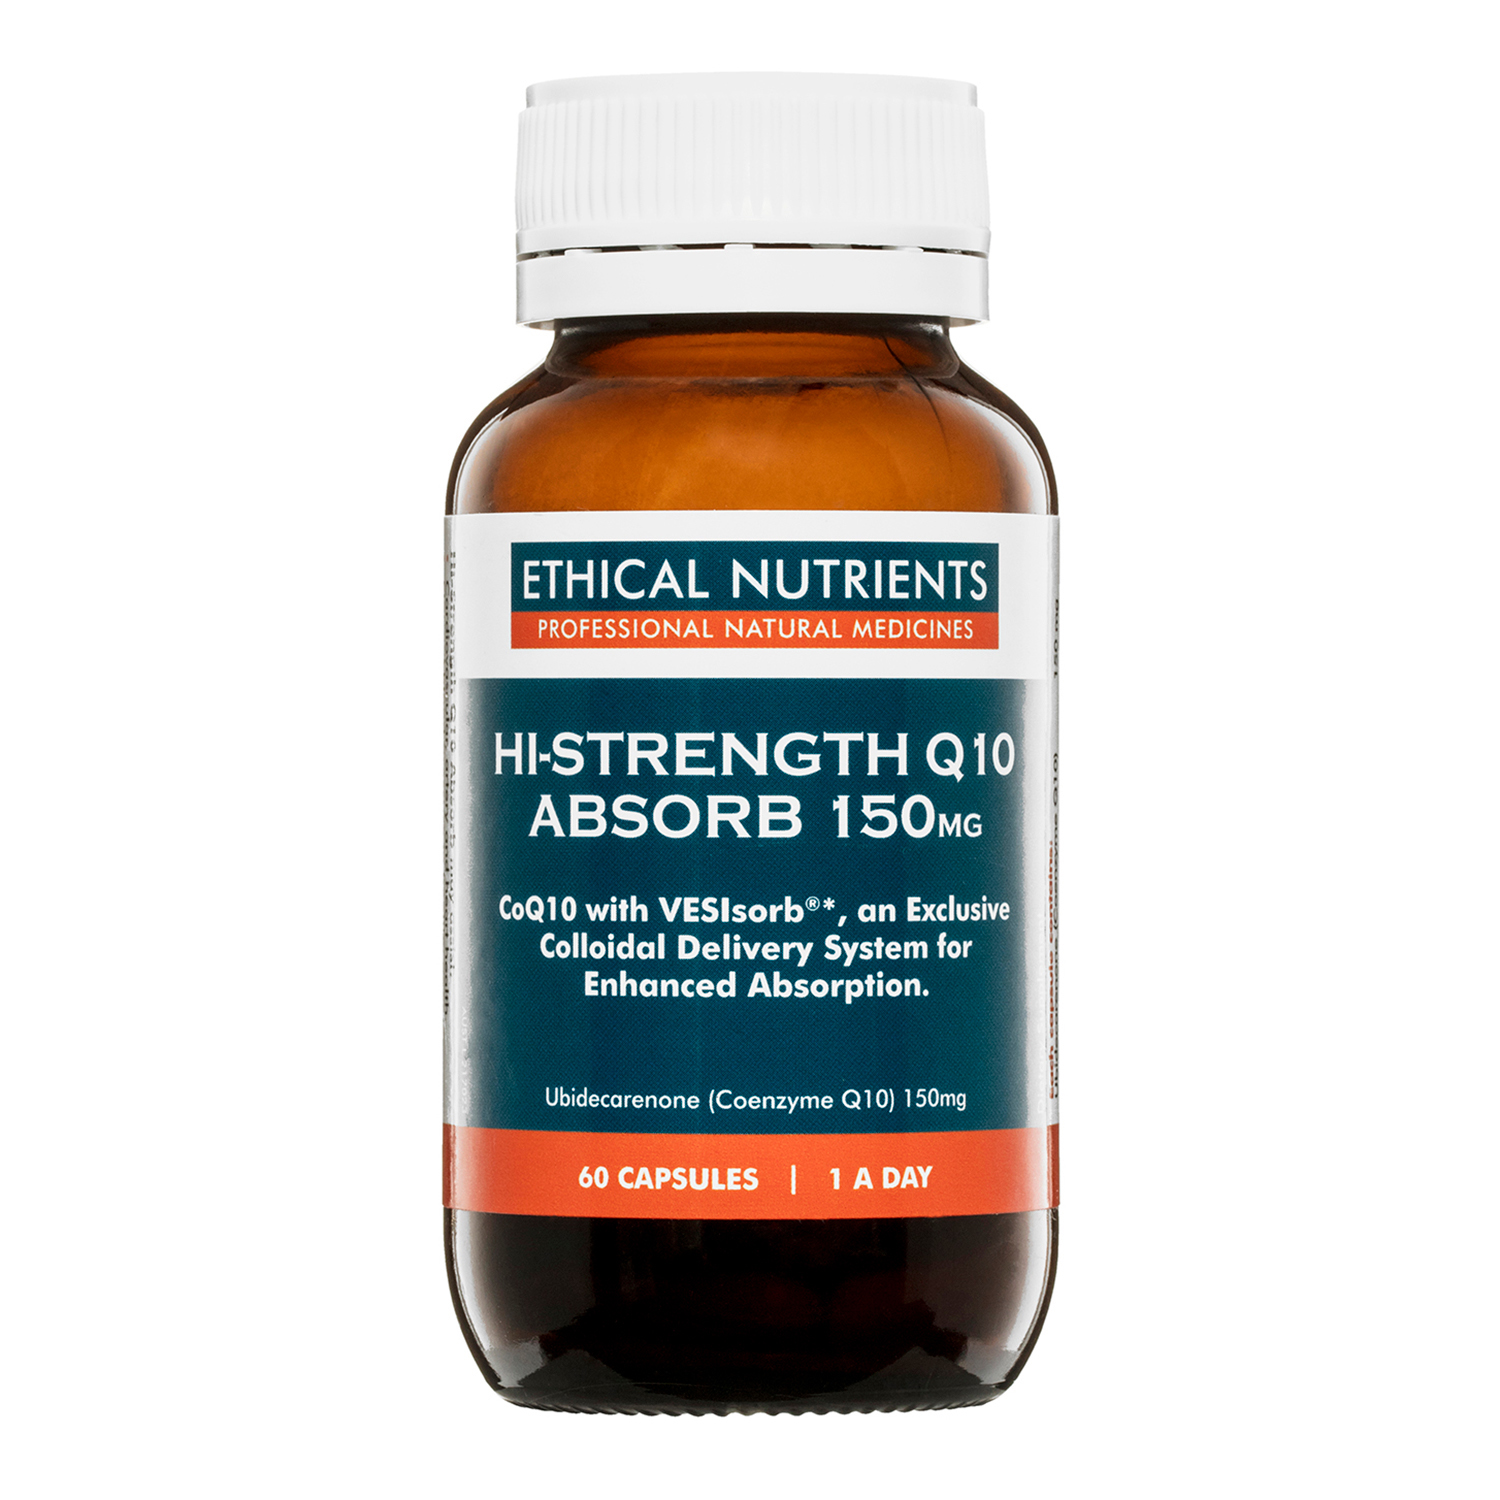 Ethical Nutrients Hi-Strength Q10 Absorb 150mg x60 Caps